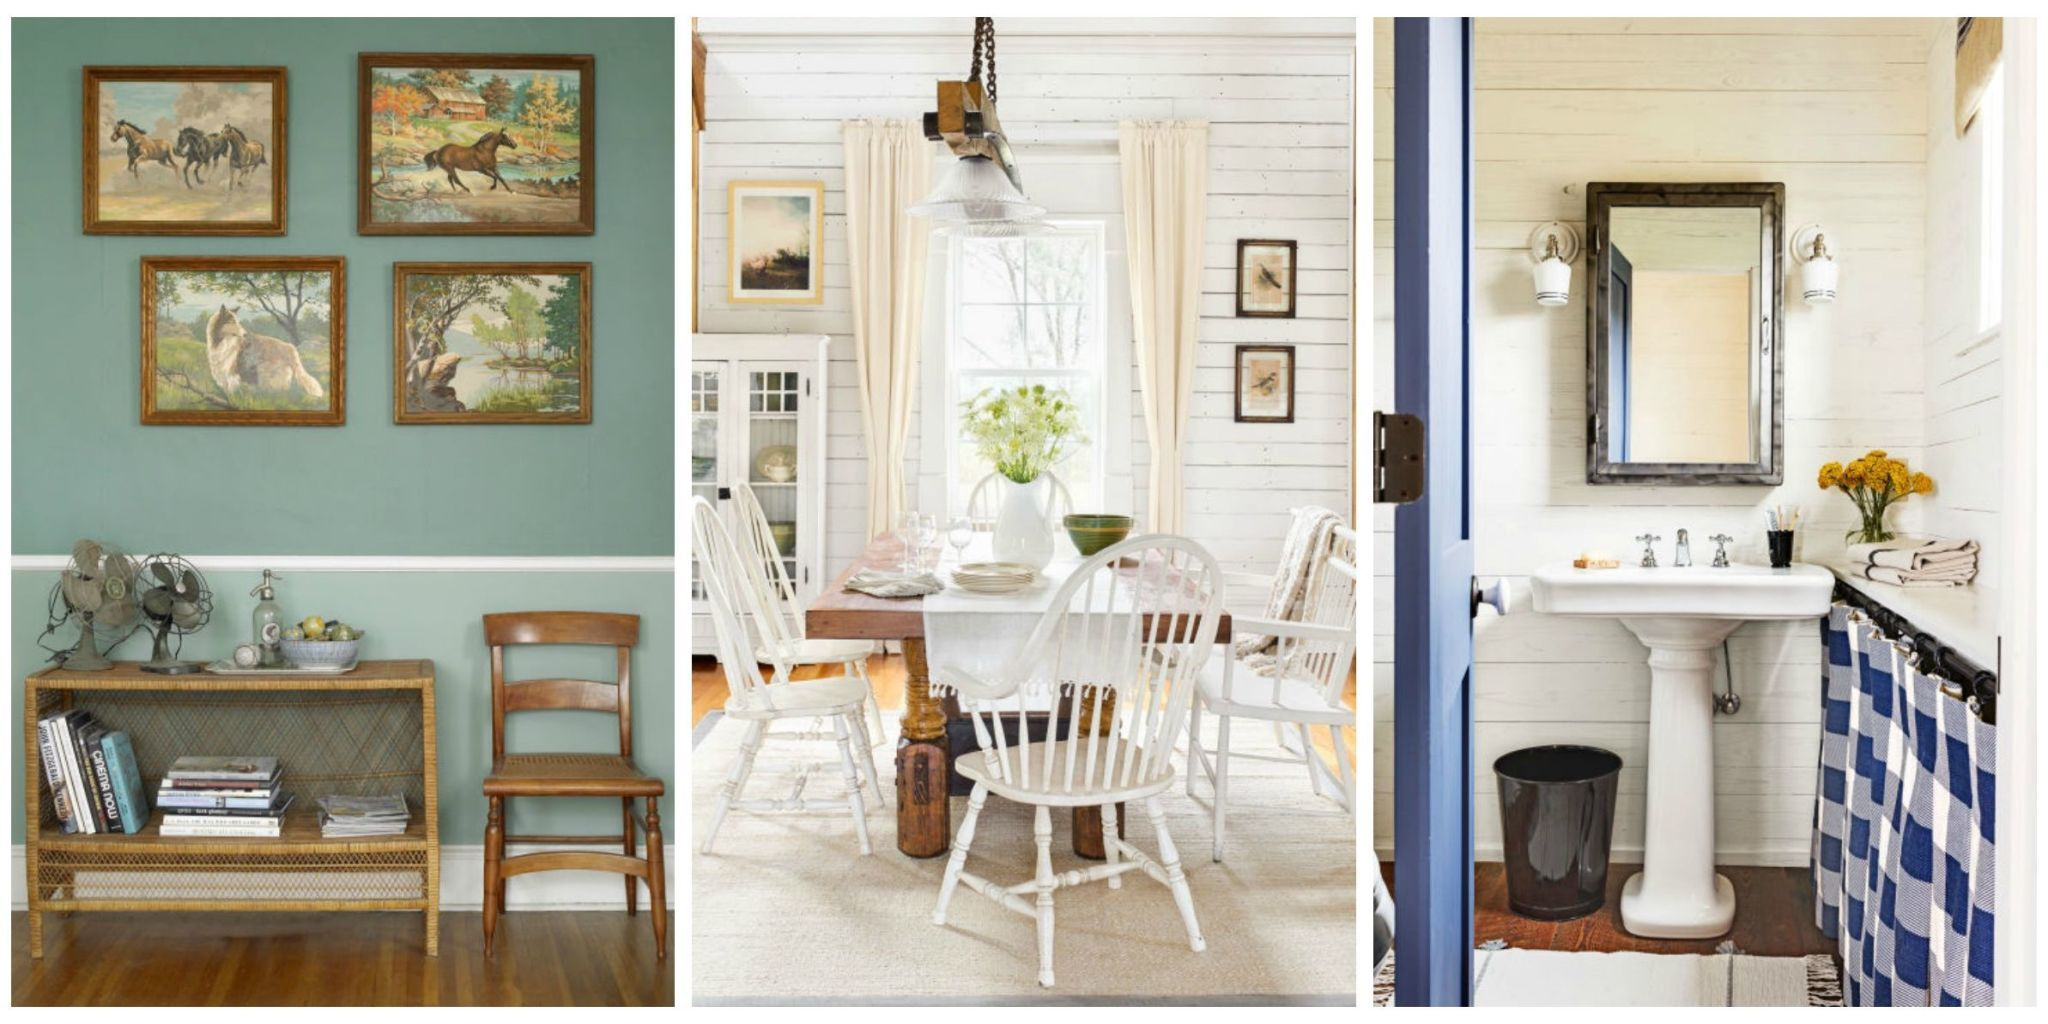 30  Inexpensive Decorating Ideas   How to Decorate on a Budget Small decorating projects can freshen up your home and be inexpensive  Try  one or two of these budget friendly fixes for an instant update